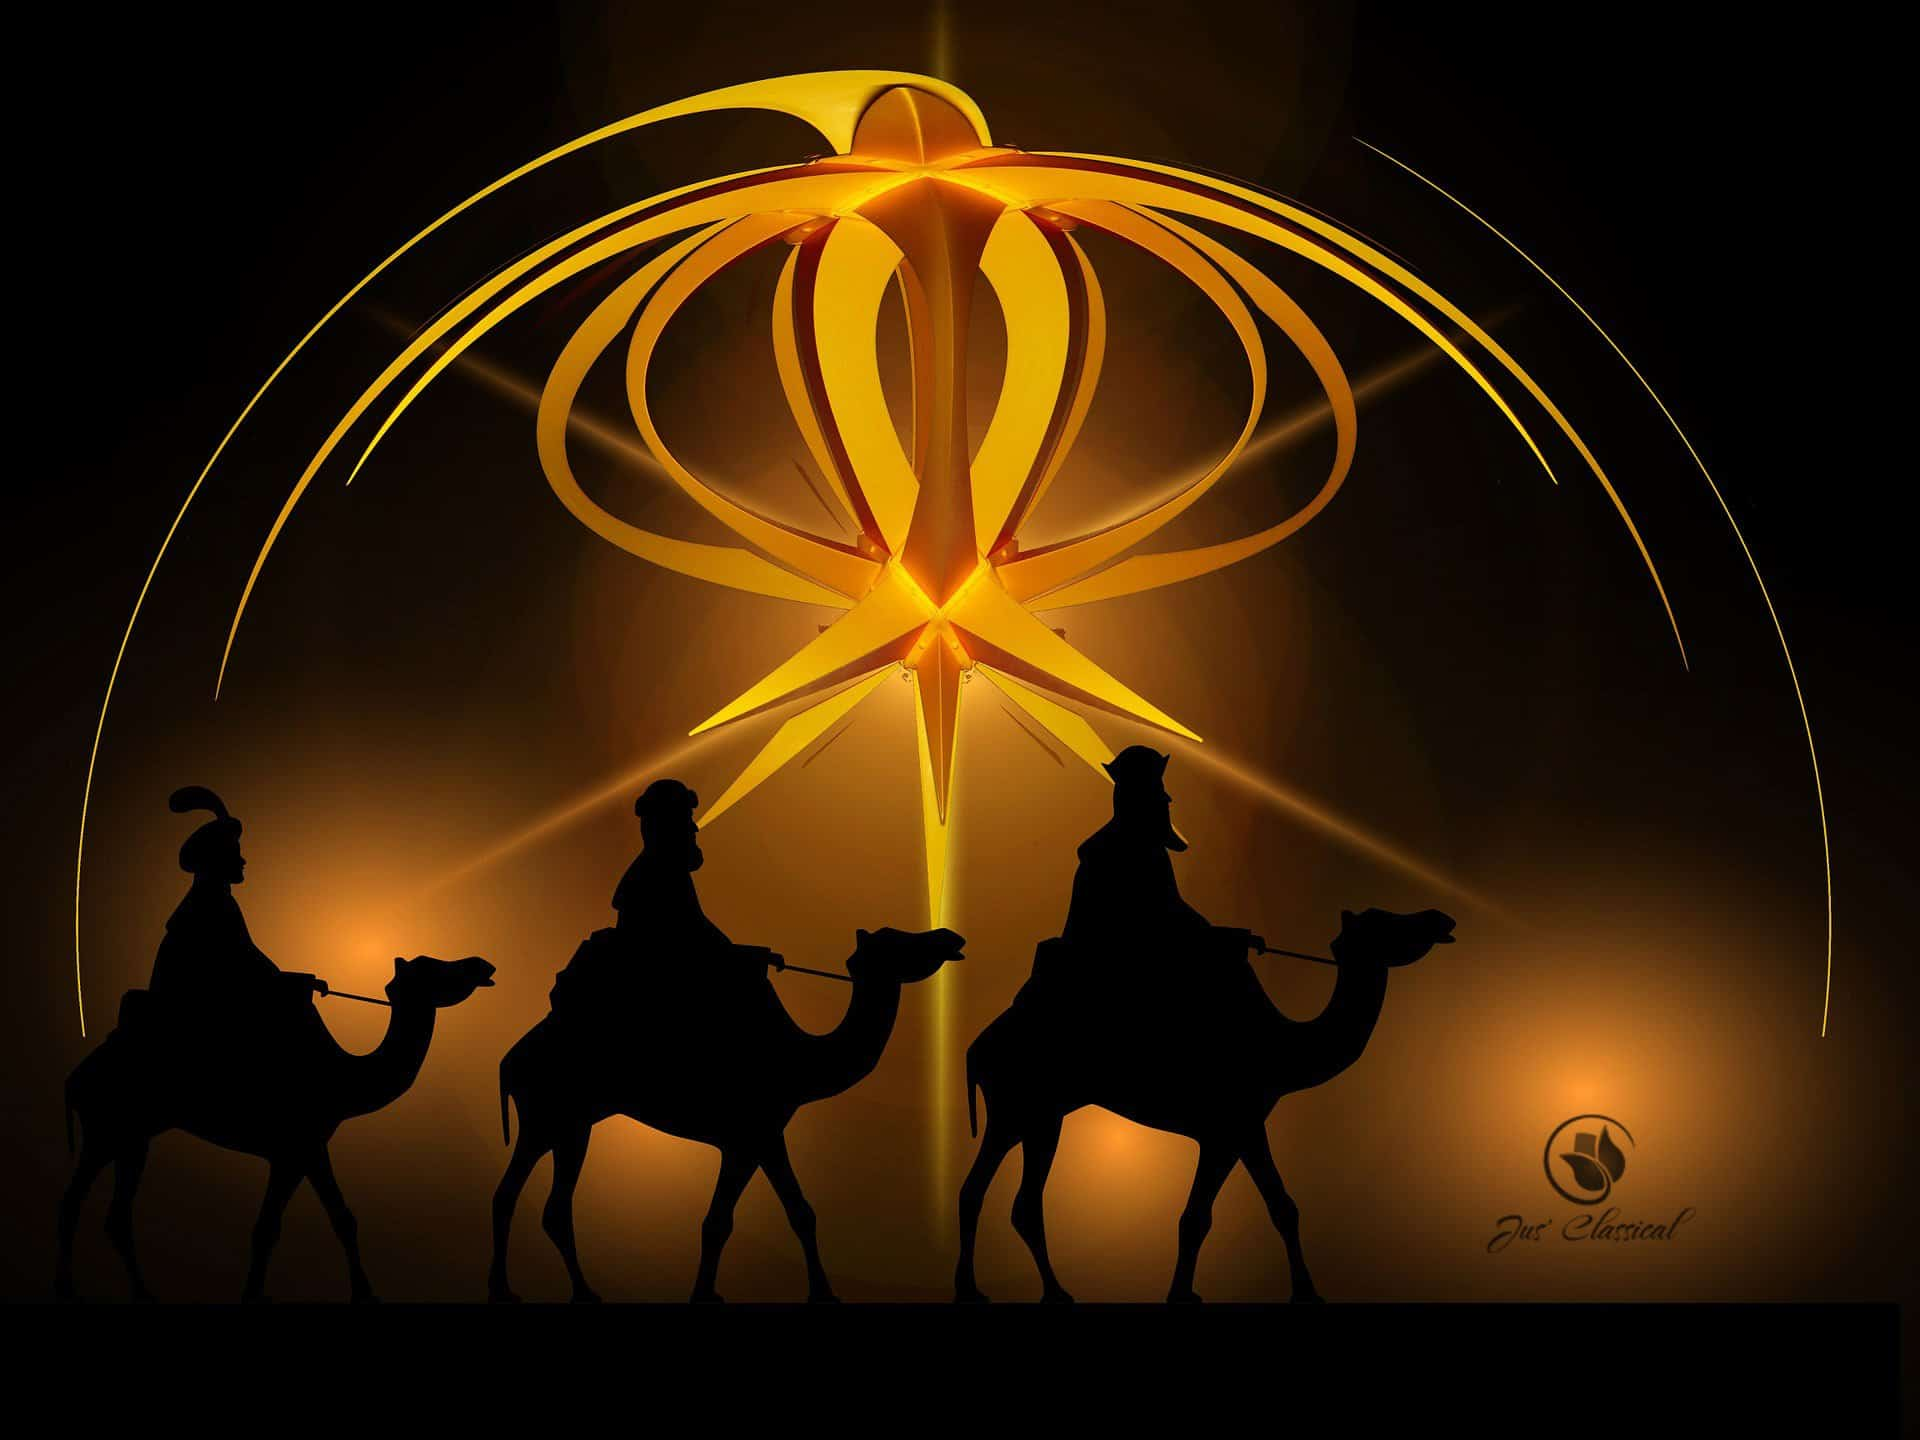 Treasuring Christ in our Christmas traditions: three wise men anticipating Christ's Advent